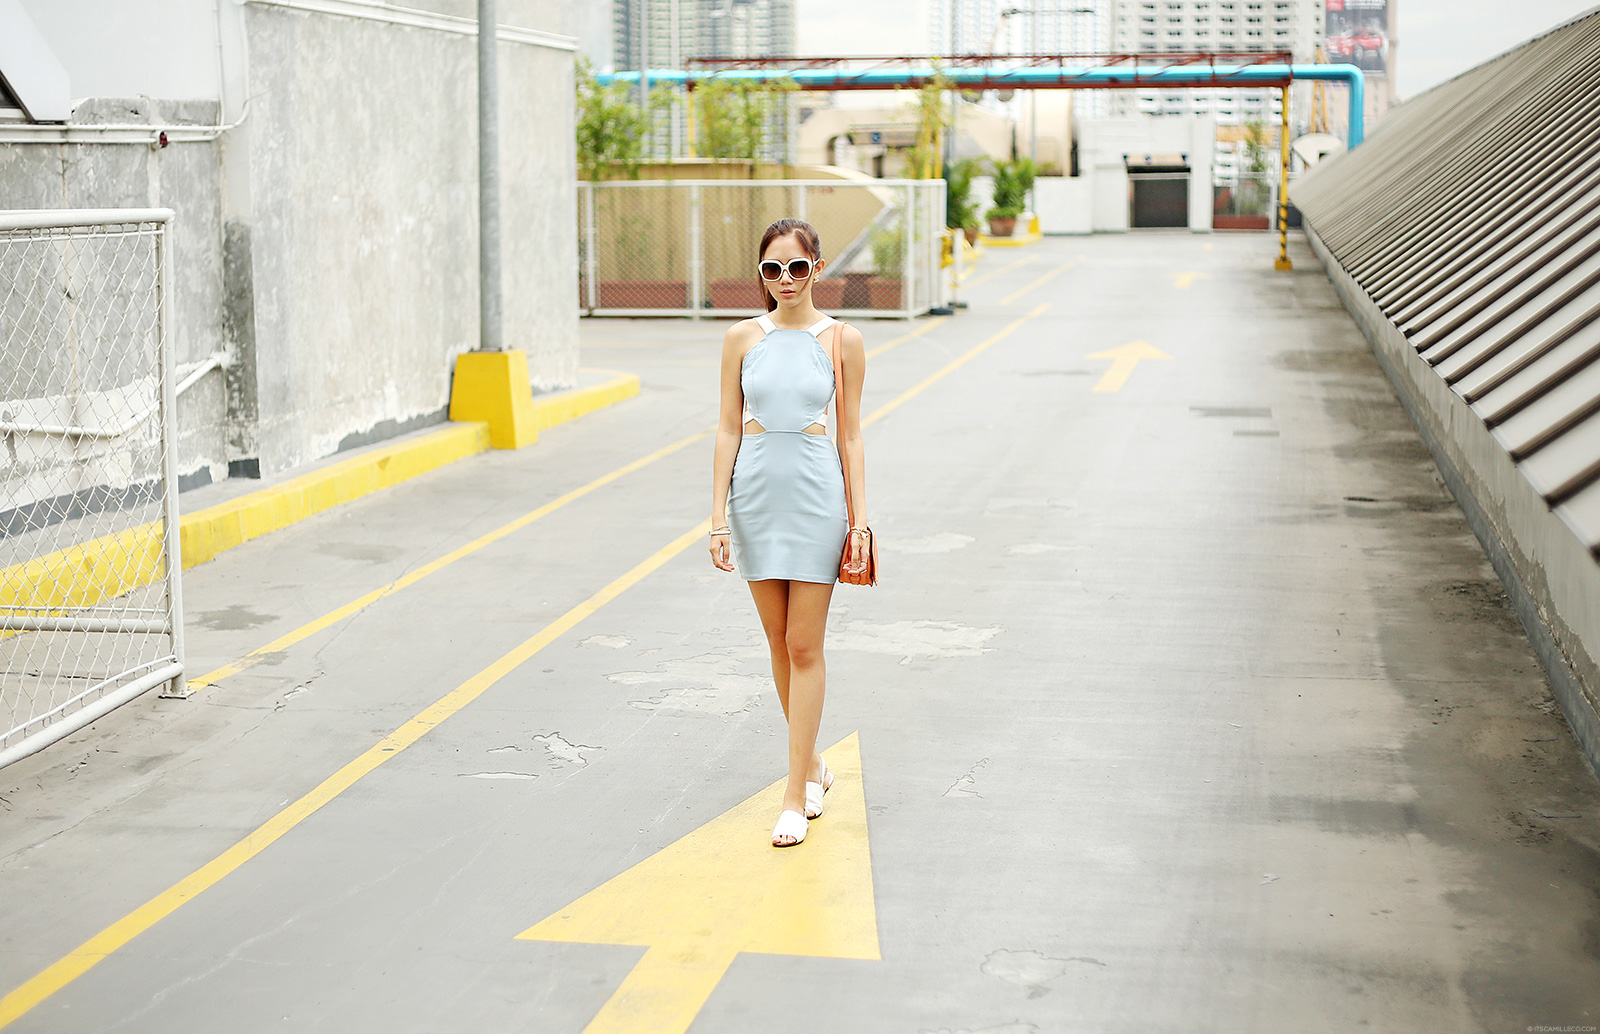 Tobi Jennia Dress, Miu Miu Sunnies, Chloe bag | www.itscamilleco.com